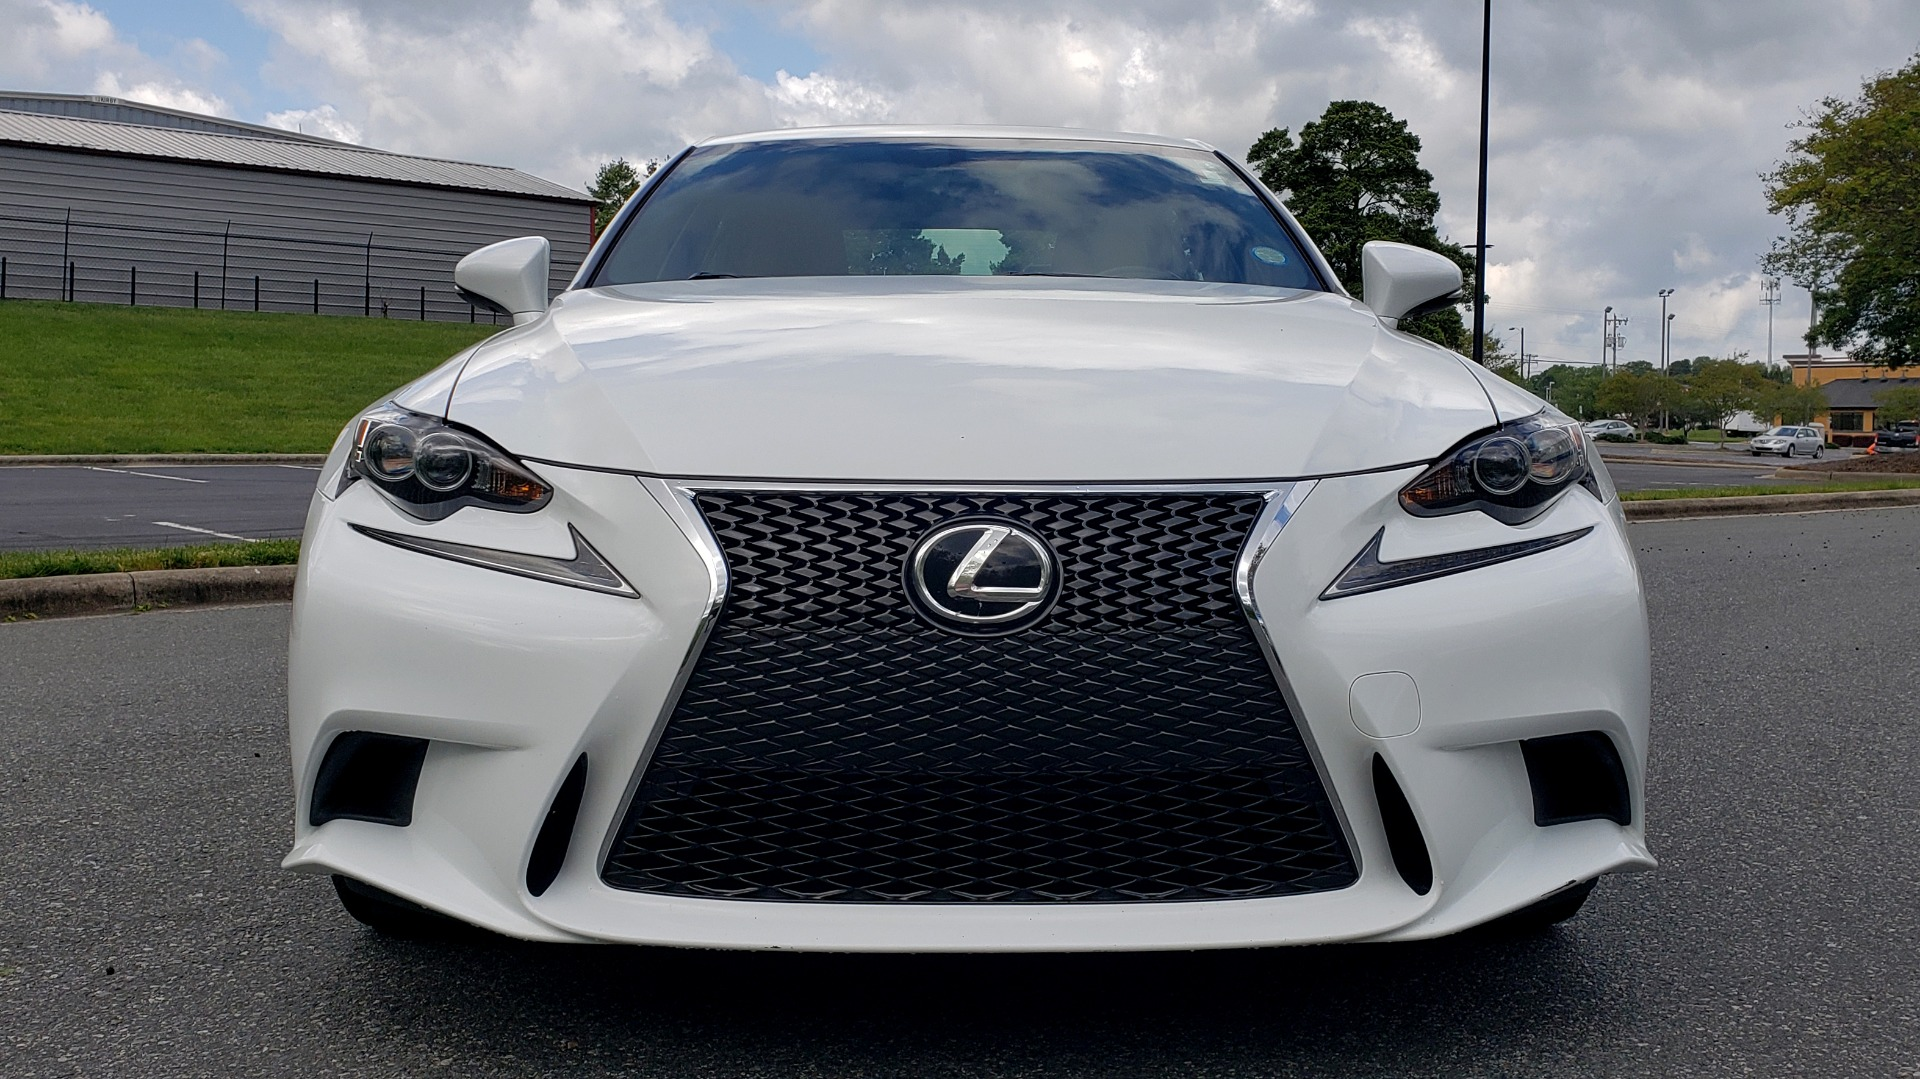 Used 2016 Lexus IS 350 F-SPORT / NAV / BSM / SUNROOF / REARVIEW / VENT SEATS for sale Sold at Formula Imports in Charlotte NC 28227 17